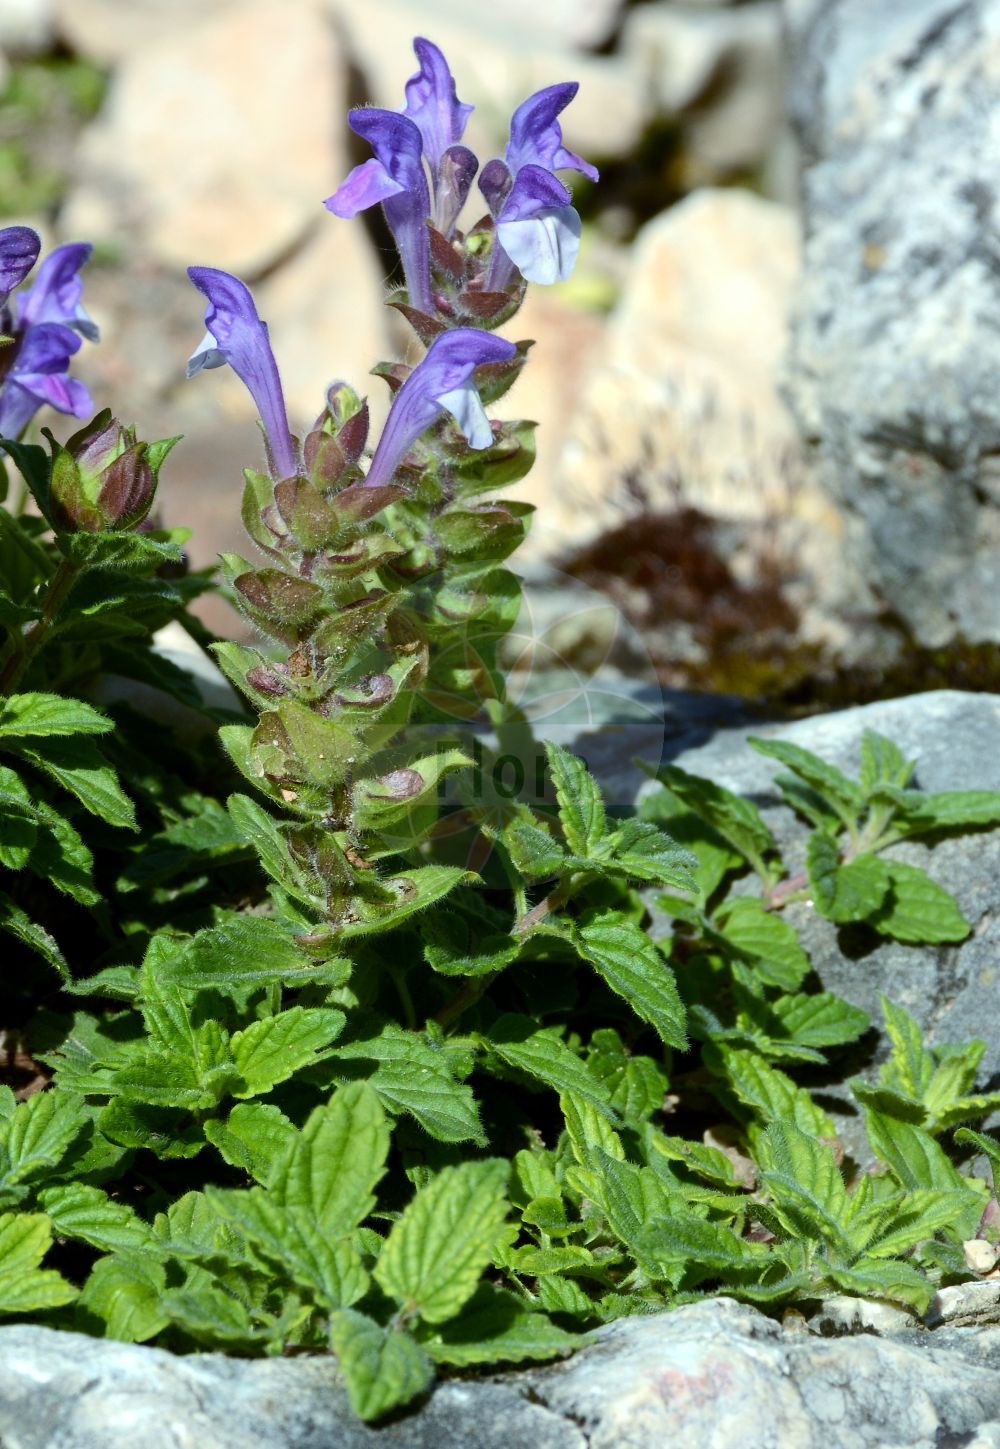 Foto von Scutellaria alpina. Das Foto wurde in Lyon, Auvergne-Rhône-Alpes, Frankreich aufgenommen. ---- Photo of Scutellaria alpina.The picture was taken in Lyon, Auvergne-Rhône-Alpes, France.(Scutellaria alpina,Cassida alpina,Scutellaria compressa,Scutellaria jabalambrensis,Scutellaria lupulina,Scutellaria variegata,Scutellaria viscida,Scutellaria,Helmkraut,Skullcap,Lamiaceae,Lippenbluetengewaechse;Lippenbluetler,Nettle family)